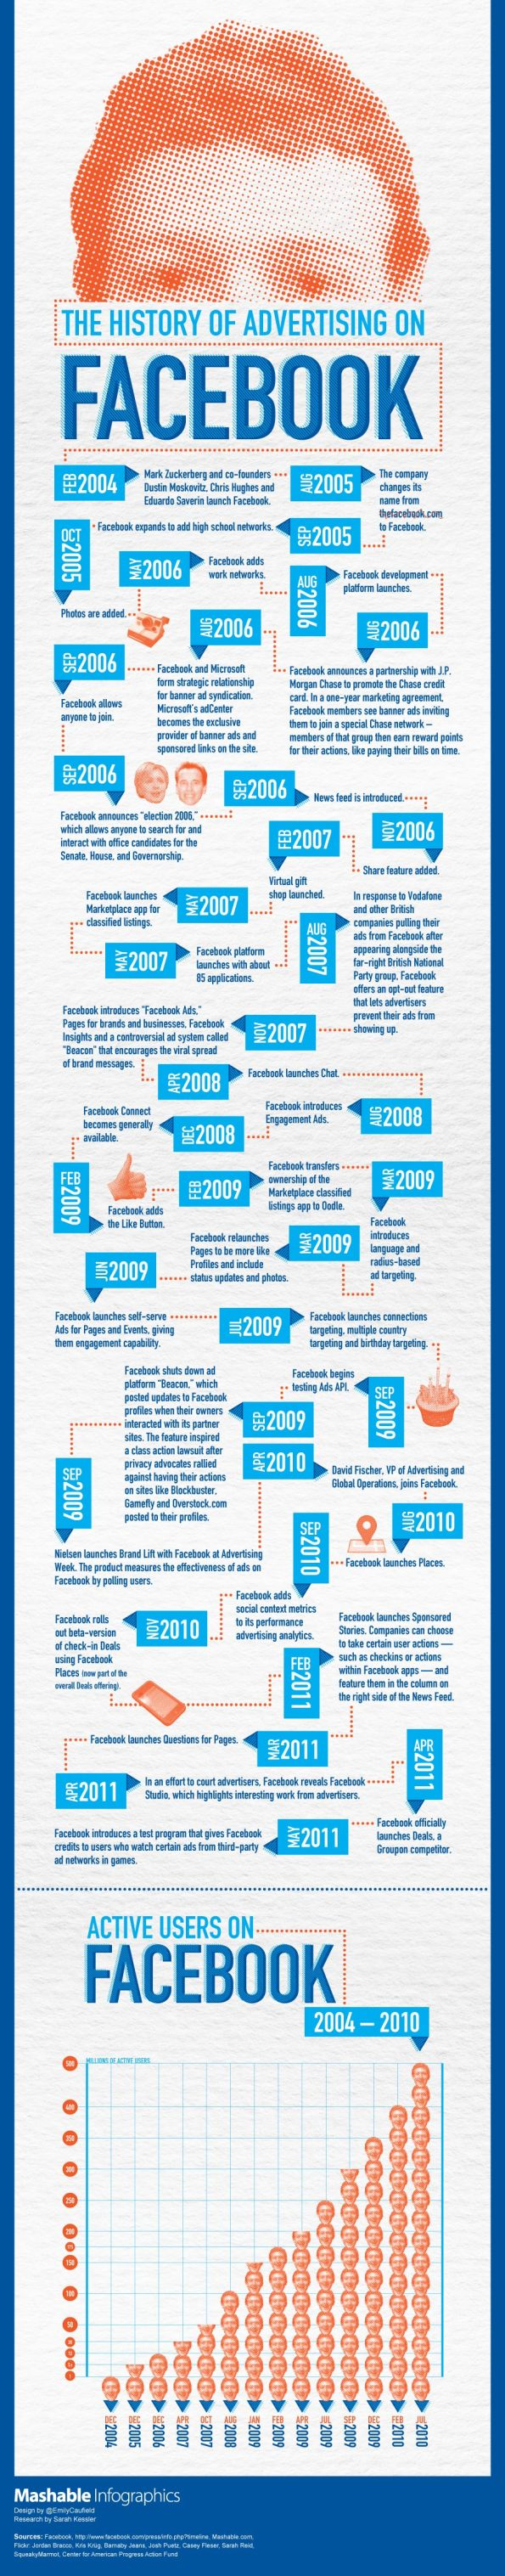 The History of Facebook Advertising